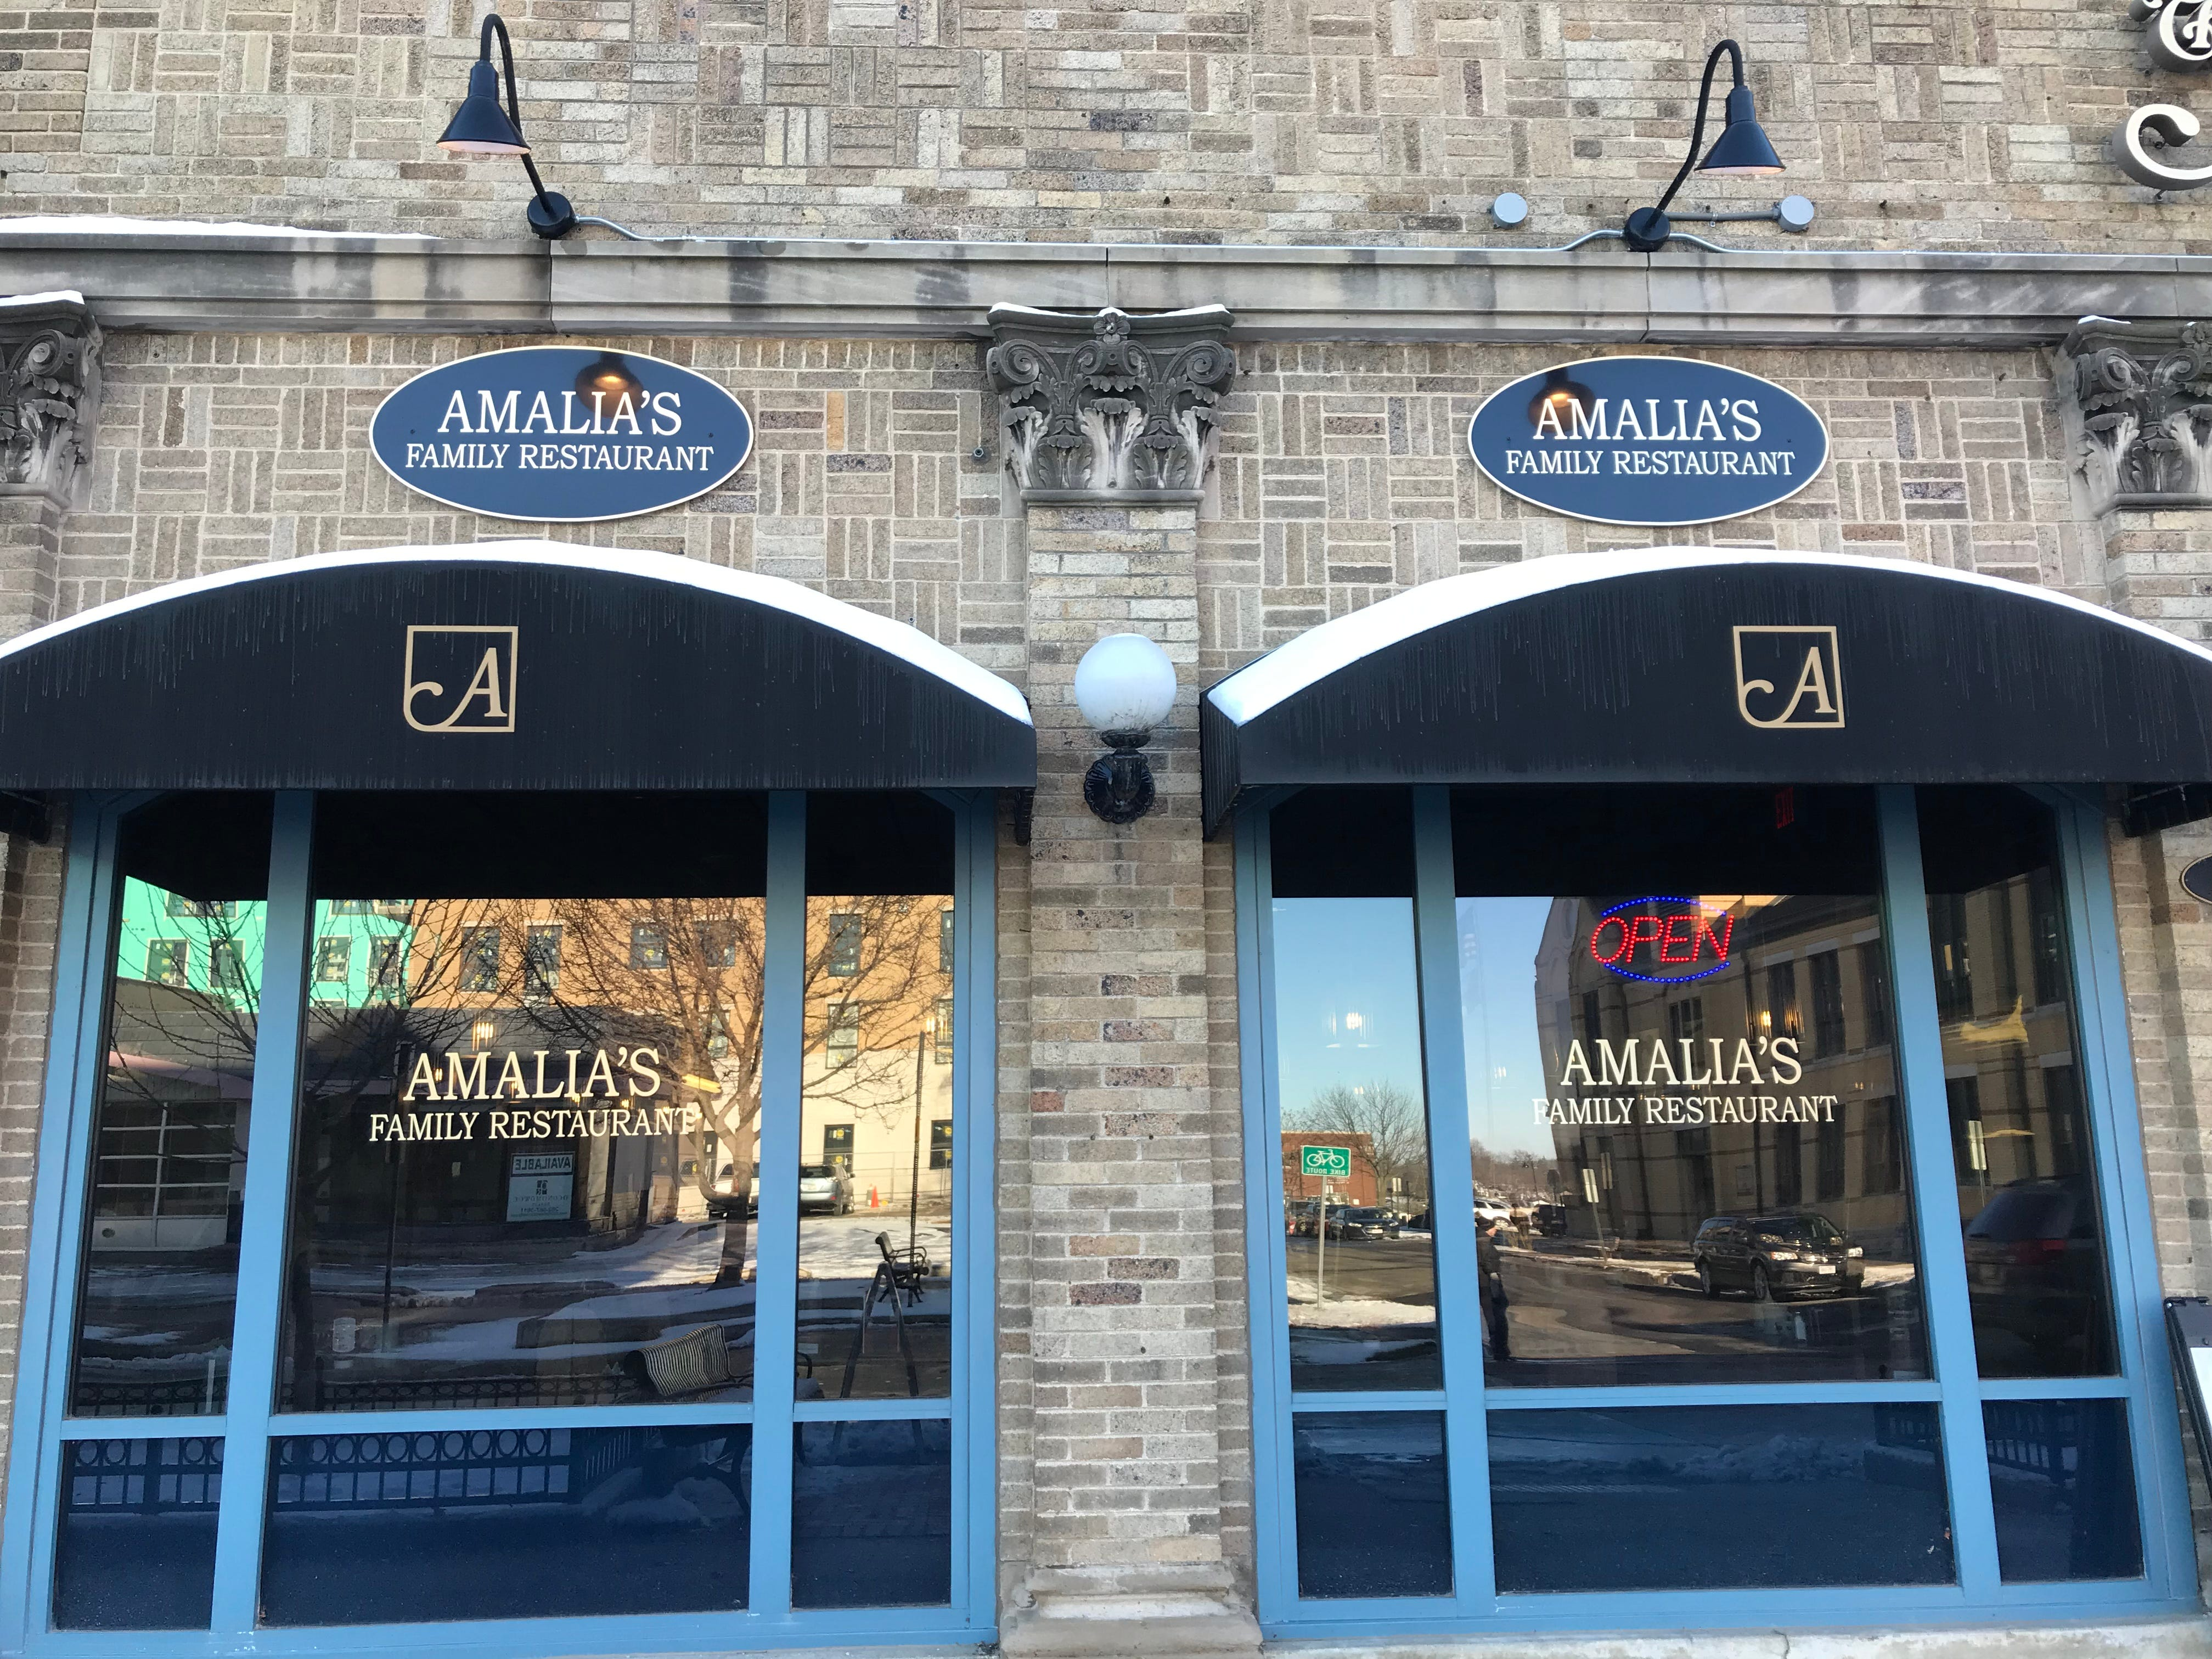 Amalia's Family Restaurant is in Avenue Square and opened in 2005.